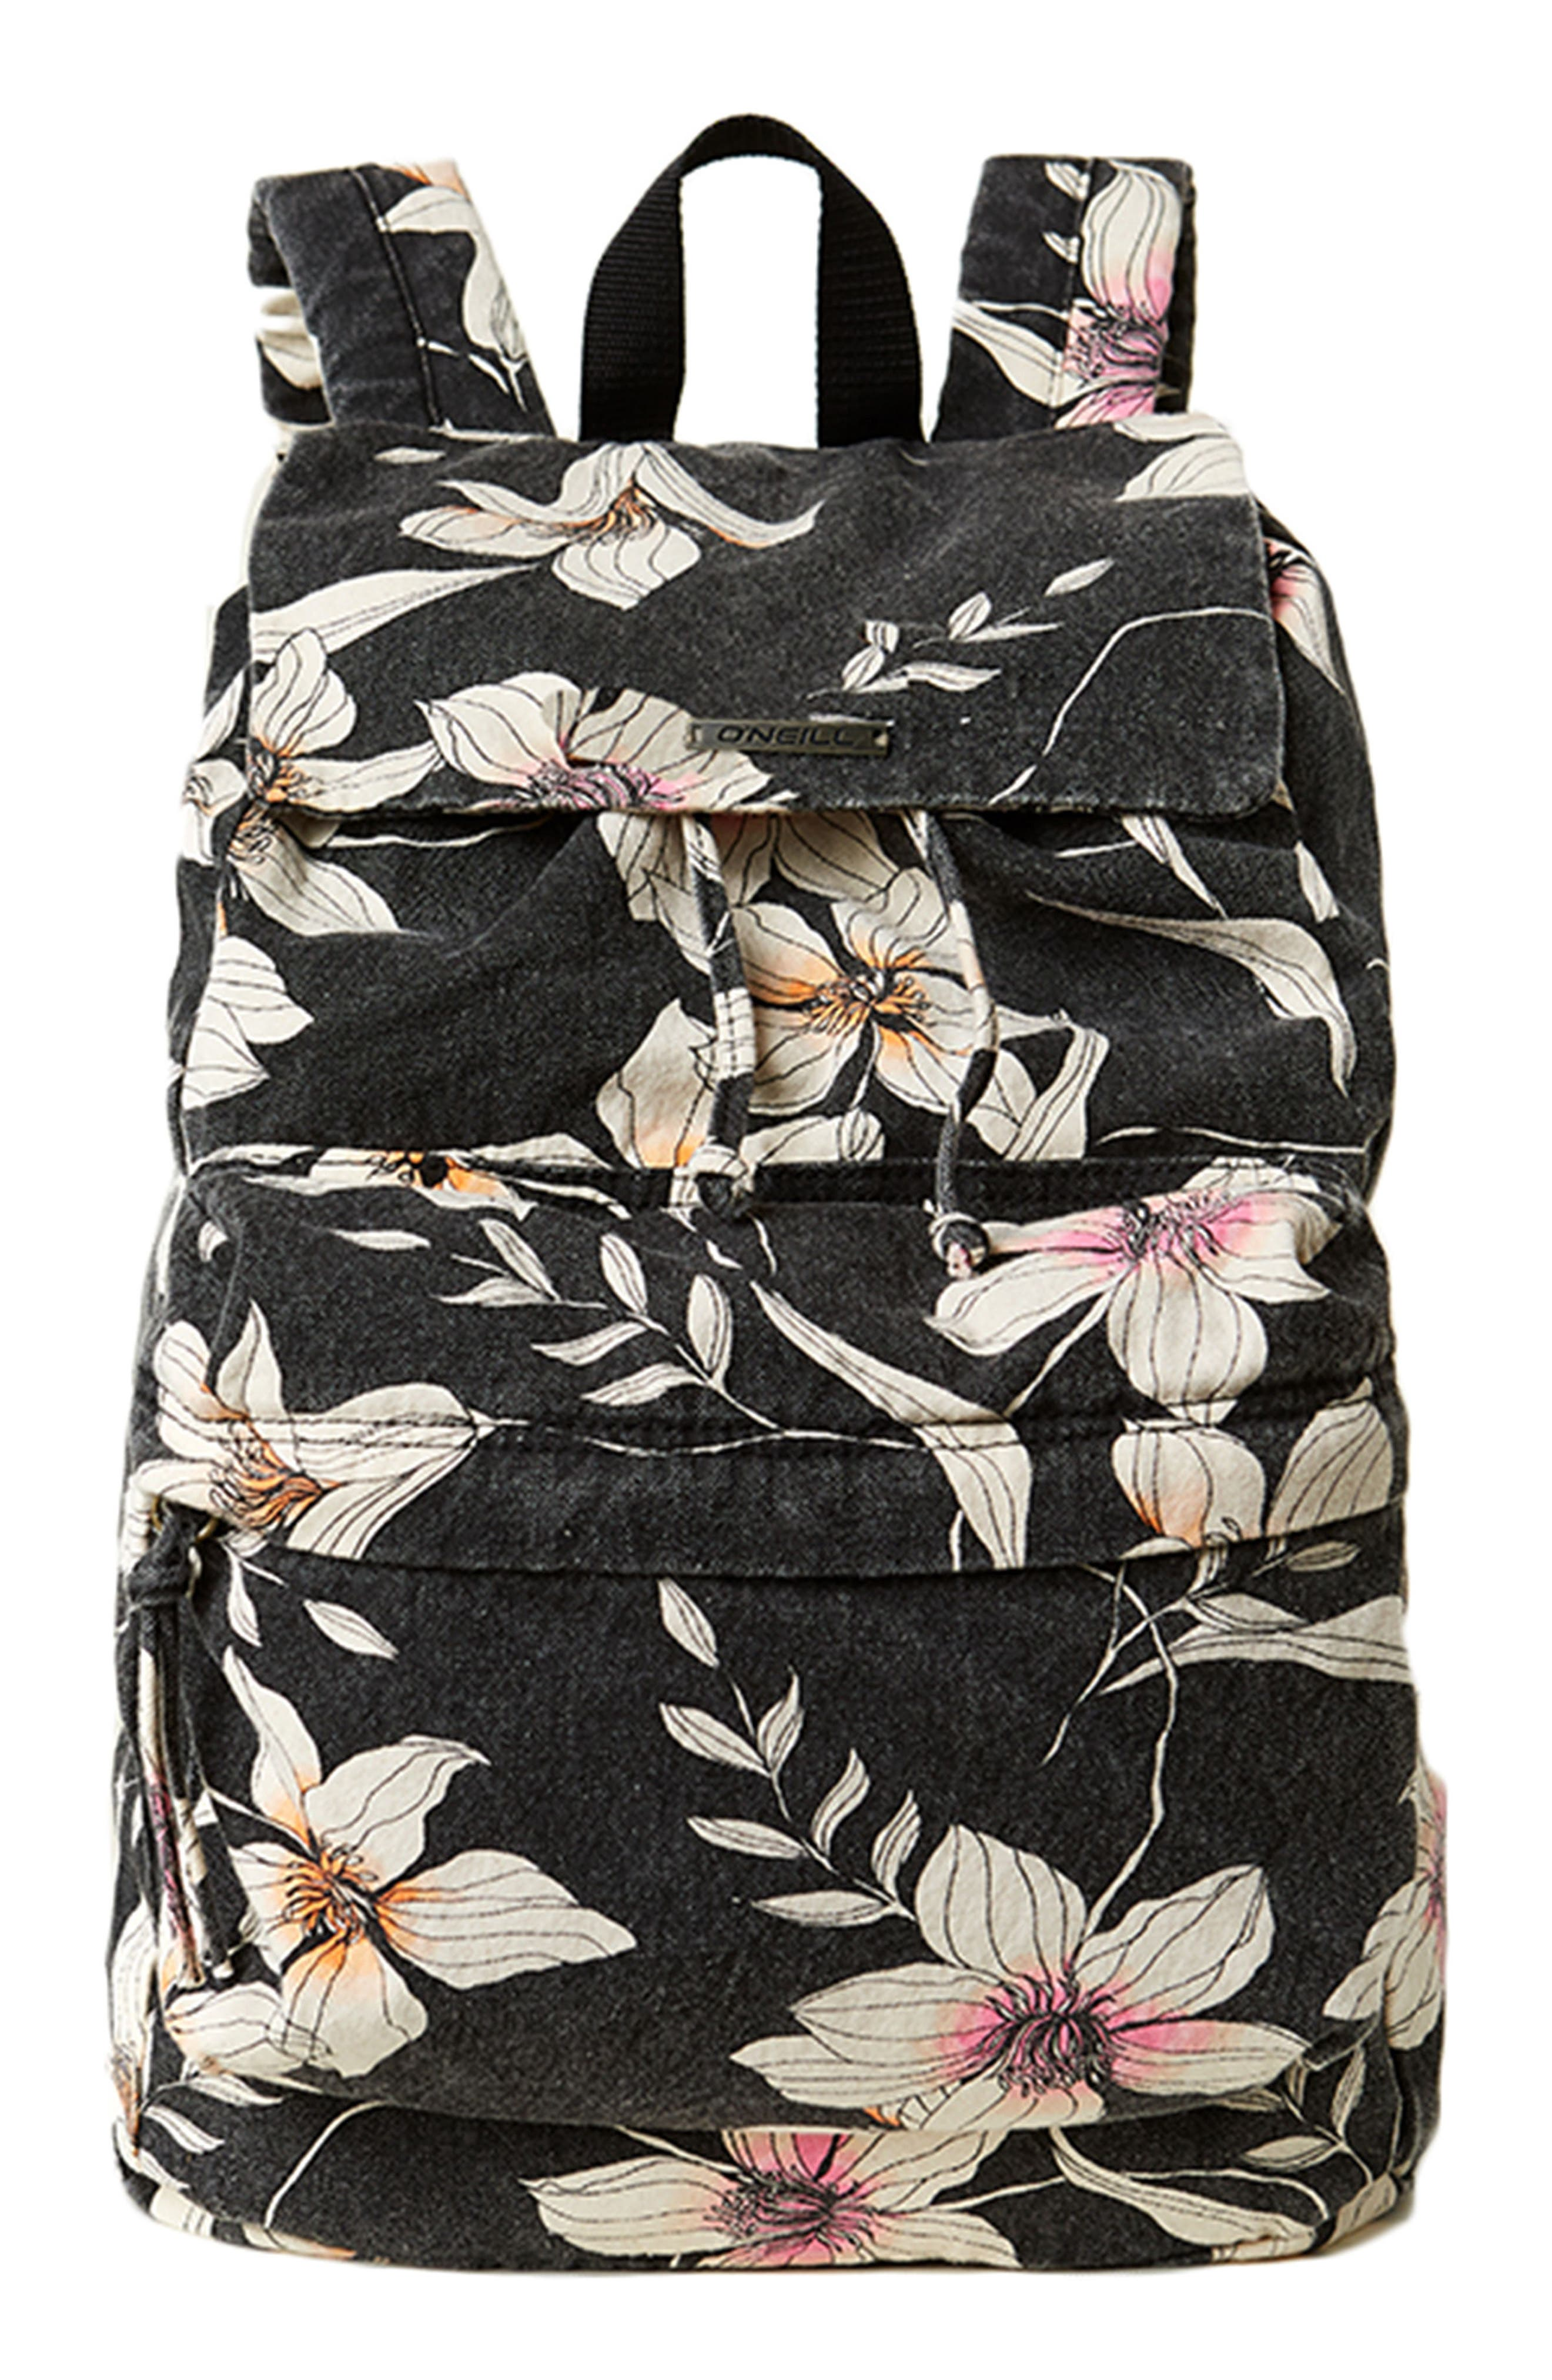 Starboard Floral Print Canvas Backpack,                             Main thumbnail 1, color,                             Black